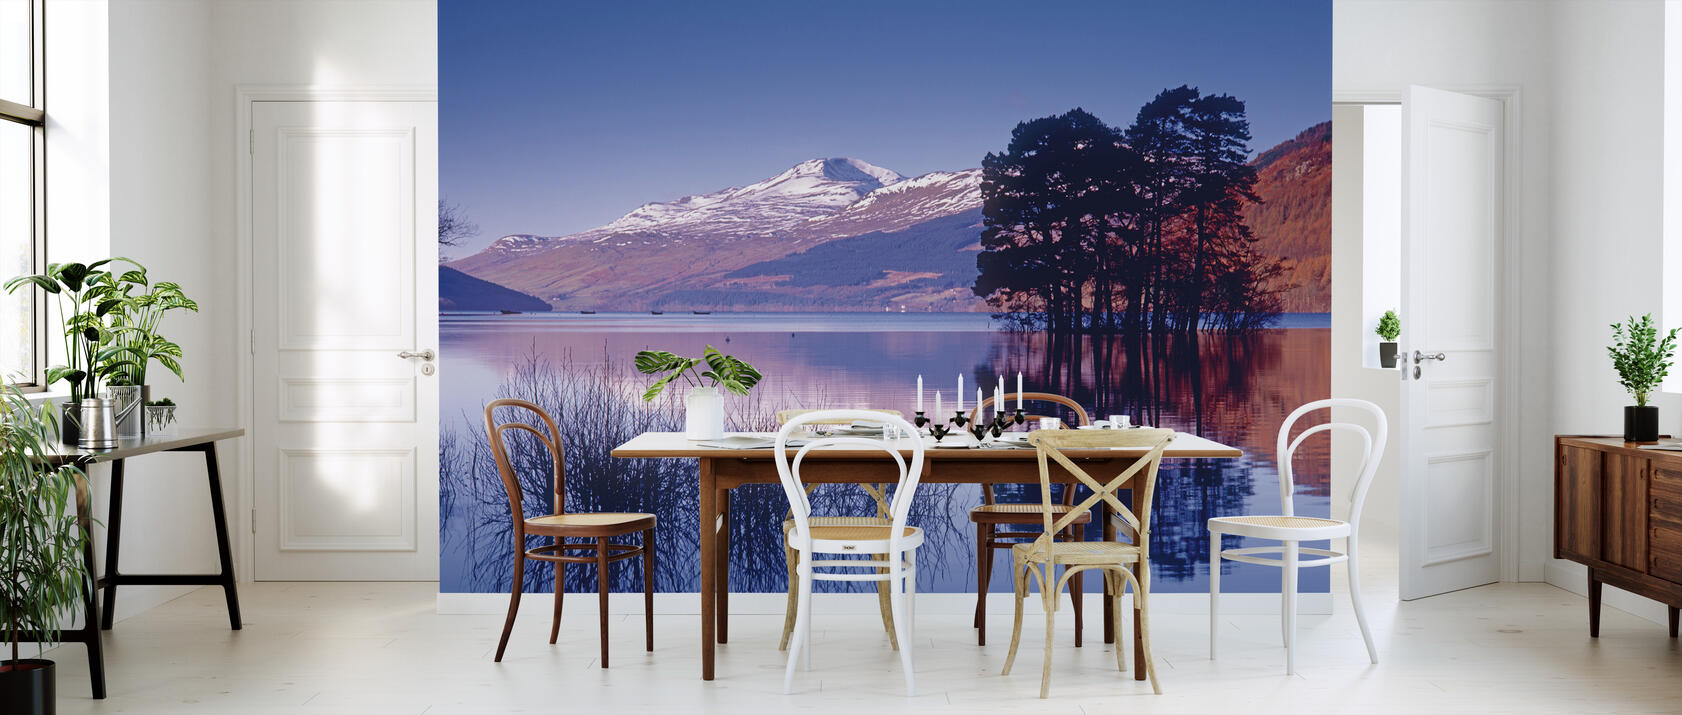 loch tay of kenmore scotland fototapete nach ma. Black Bedroom Furniture Sets. Home Design Ideas